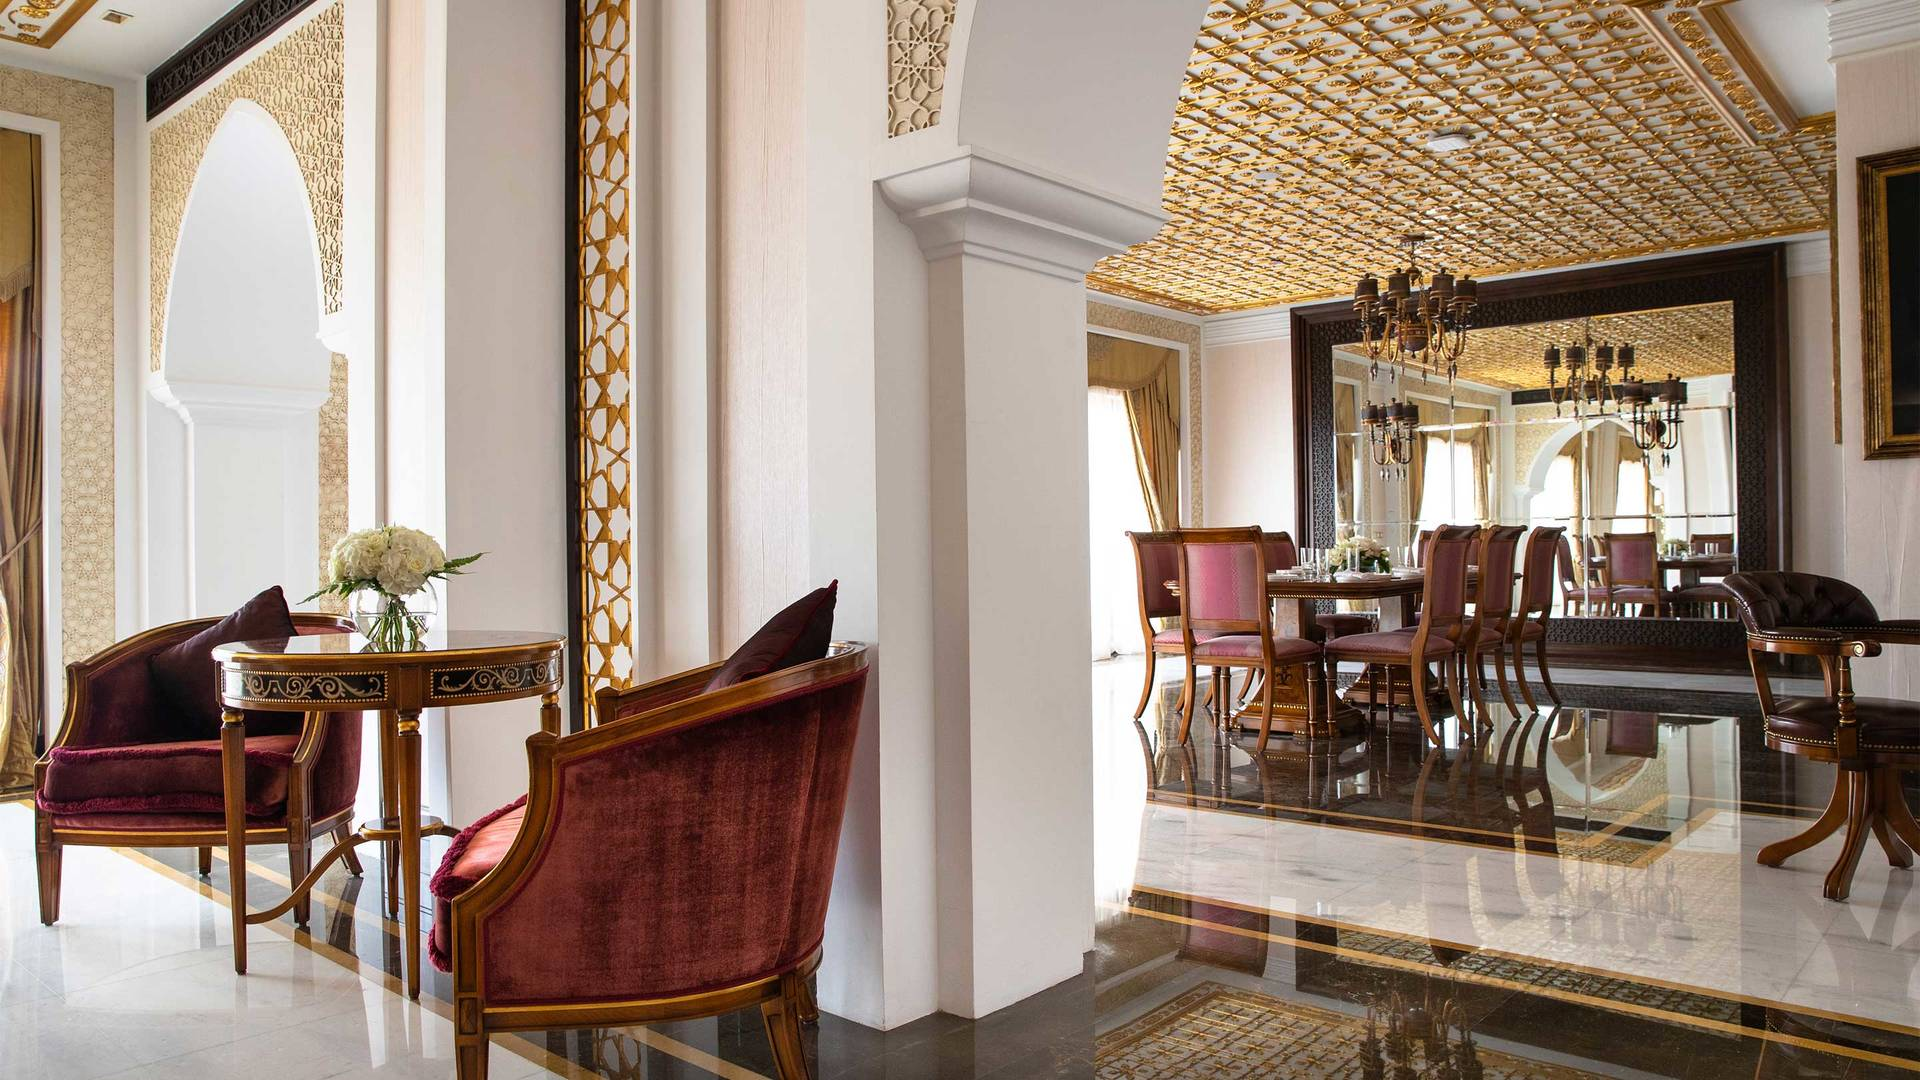 16-9_Jumeirah-Zabeel-Saray---Grand-Imperial-Suite---Dining-Room